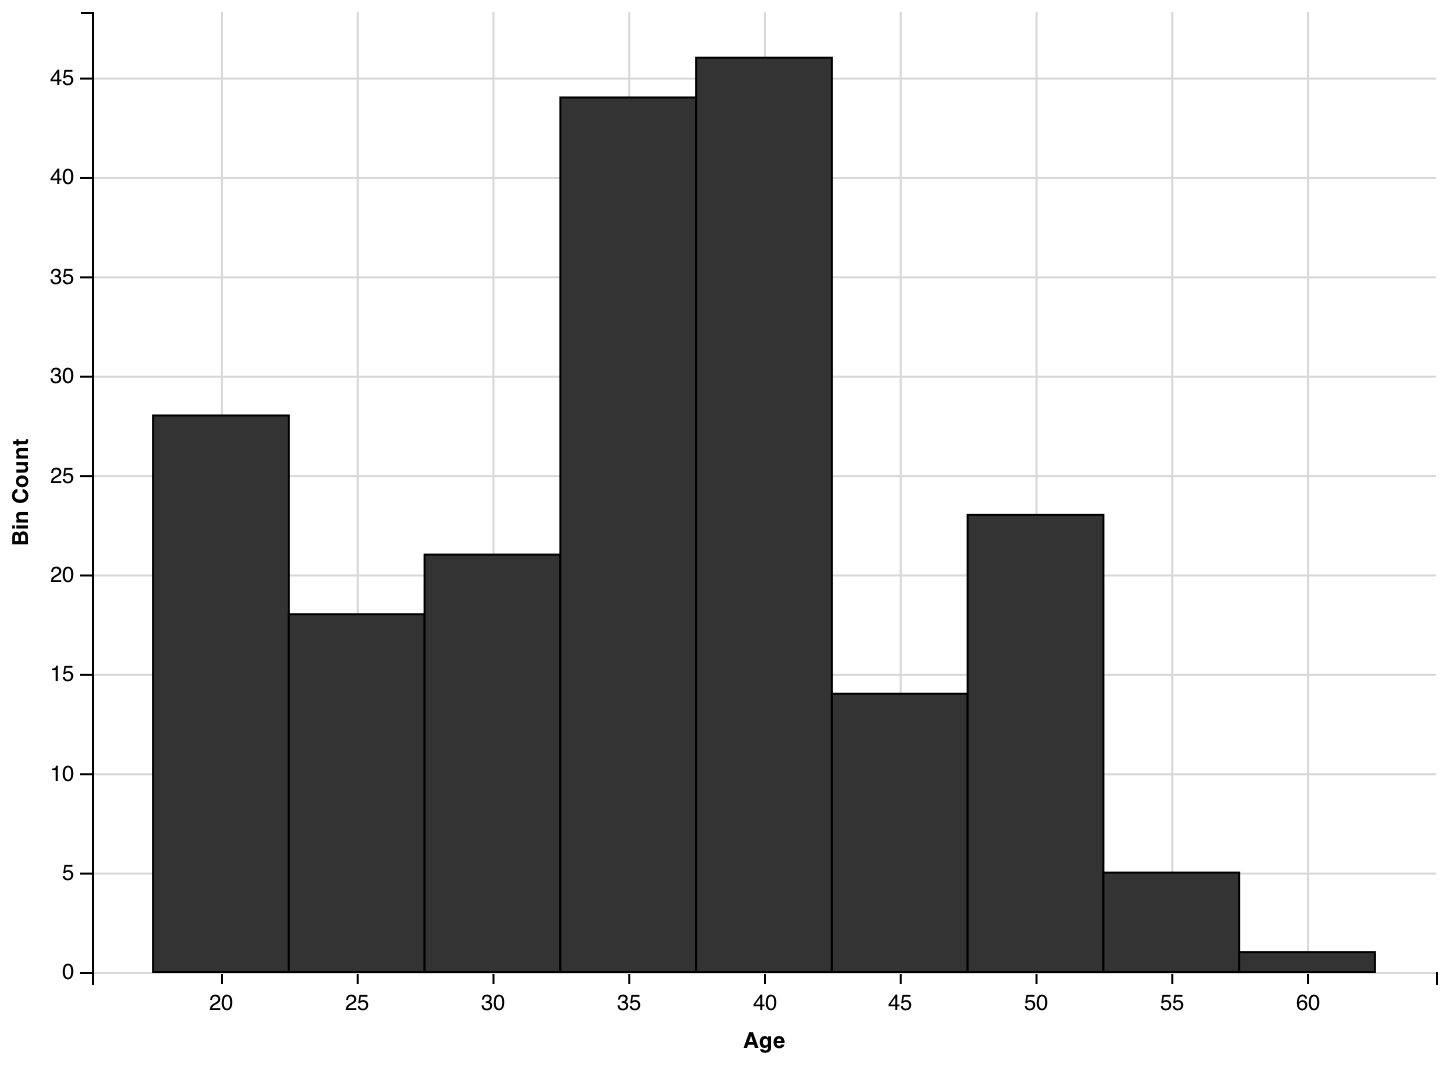 Drawing histogram age. How to make a